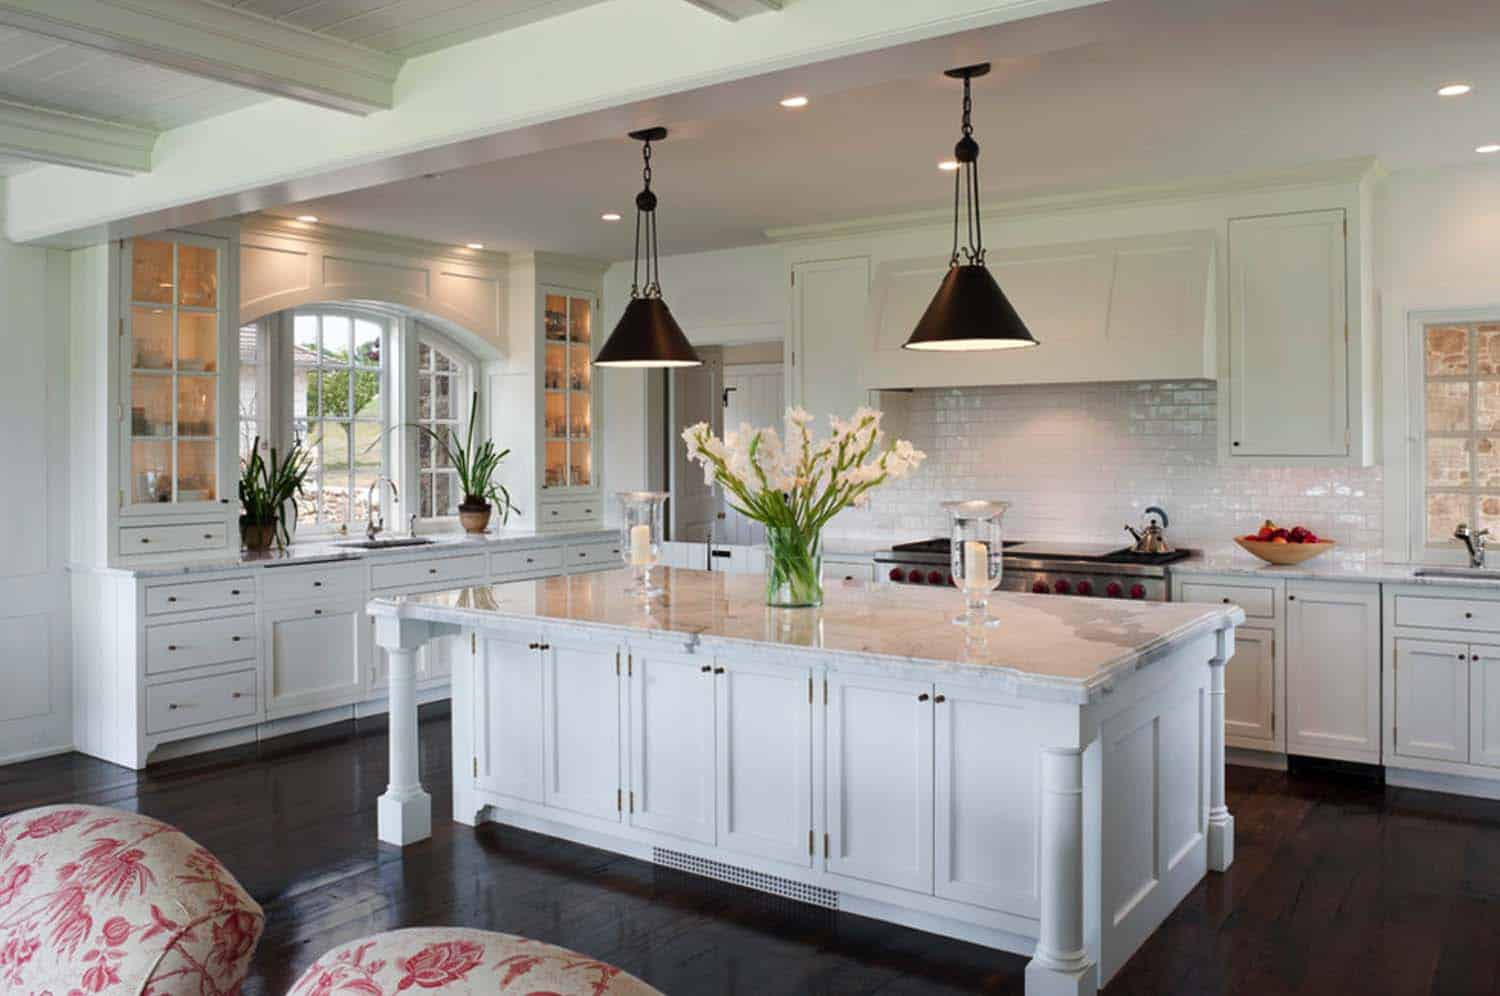 plans for kitchen island 30 brilliant kitchen island ideas that make a statement 2939